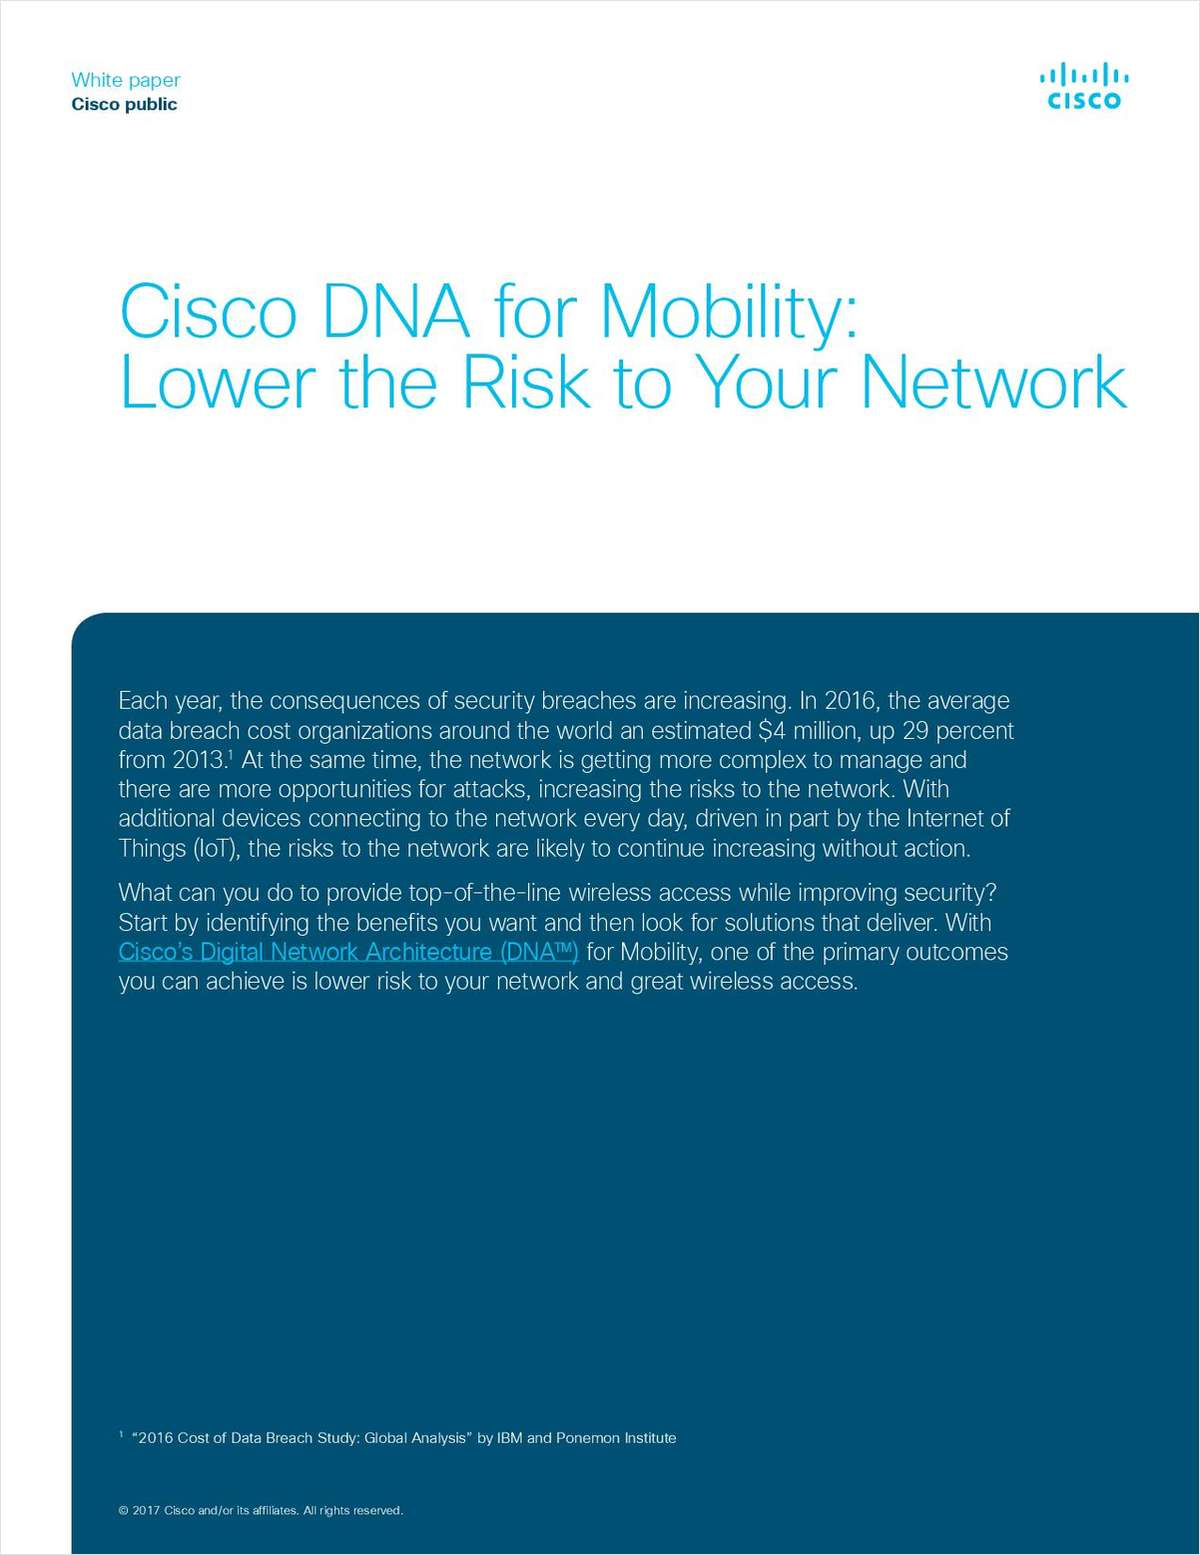 Cisco DNA for Mobility: Lower the Risk to Your Network